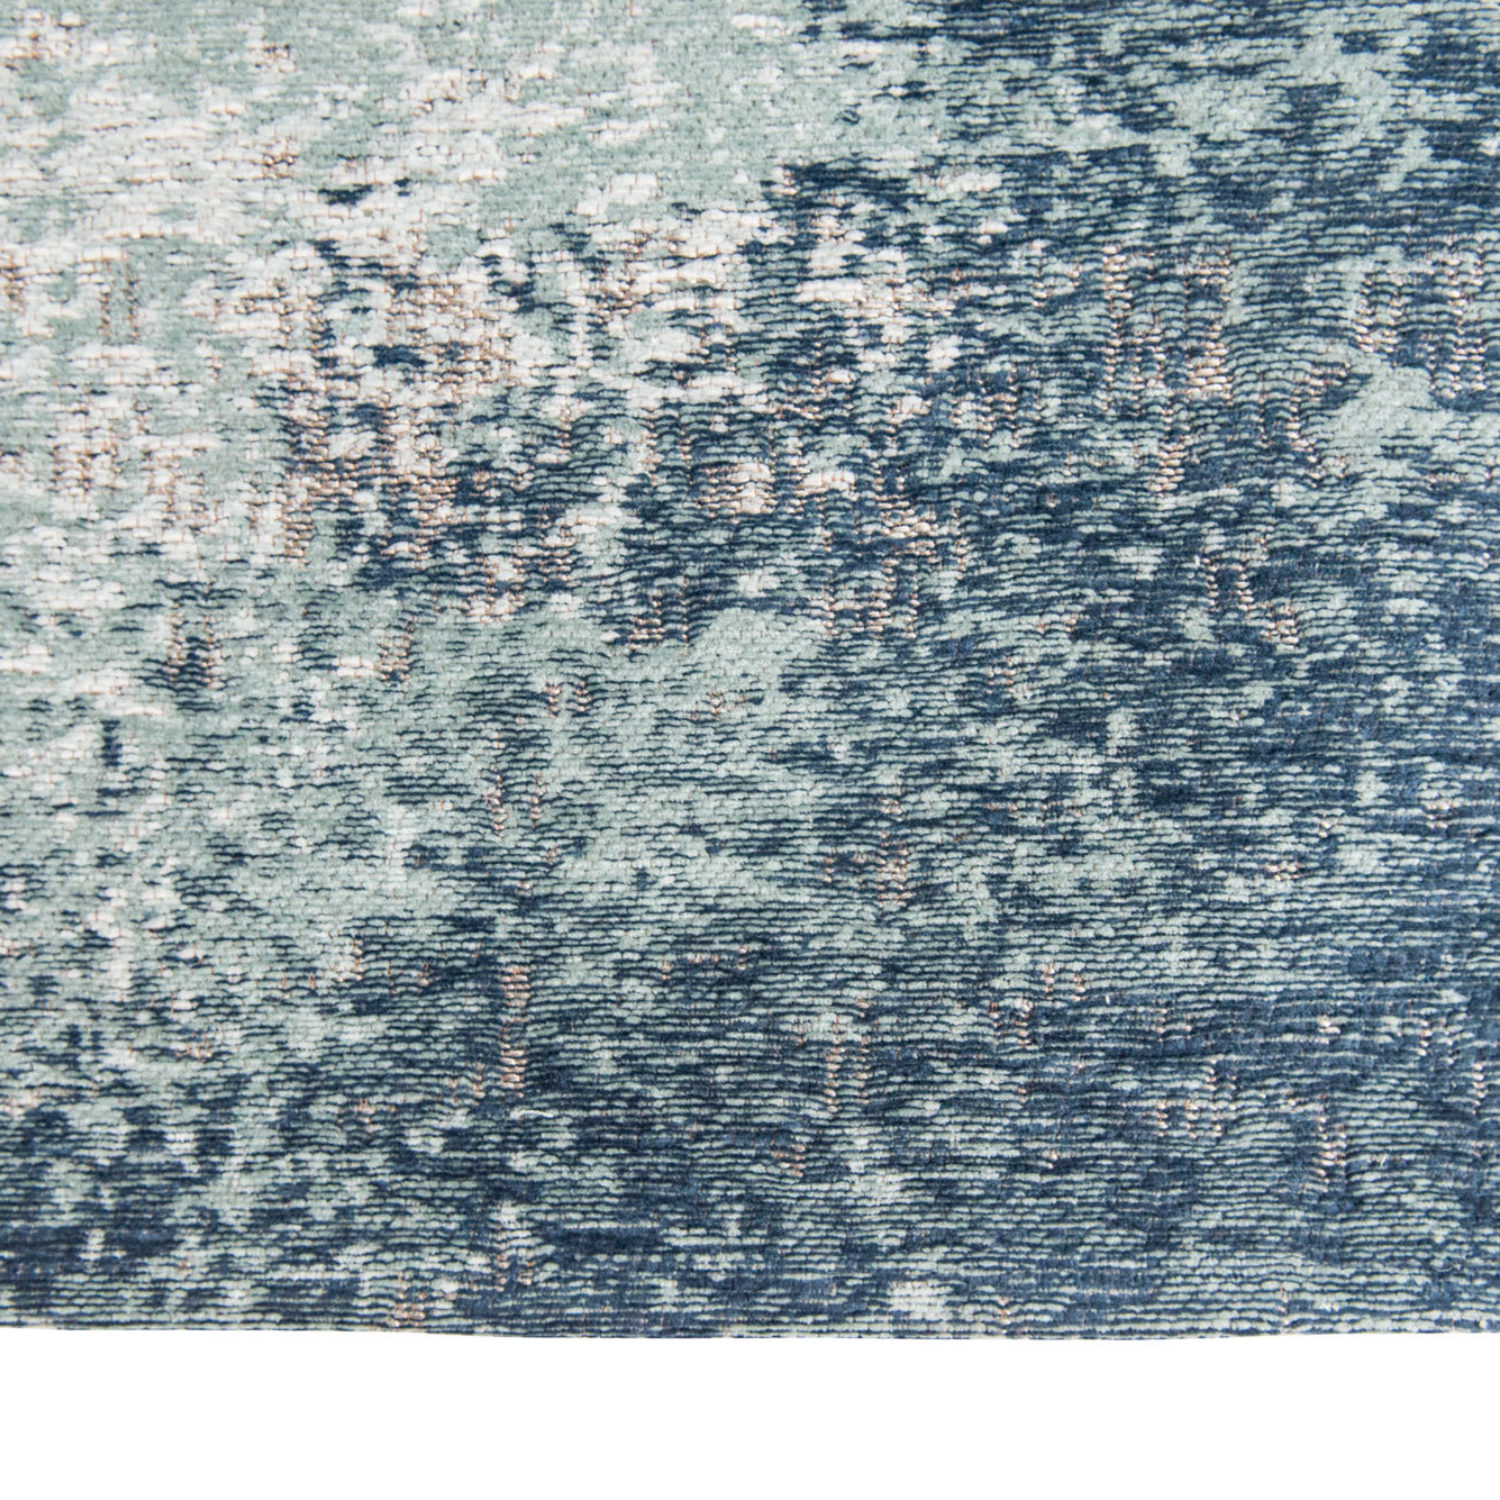 A richly textured rug for a distressed look.